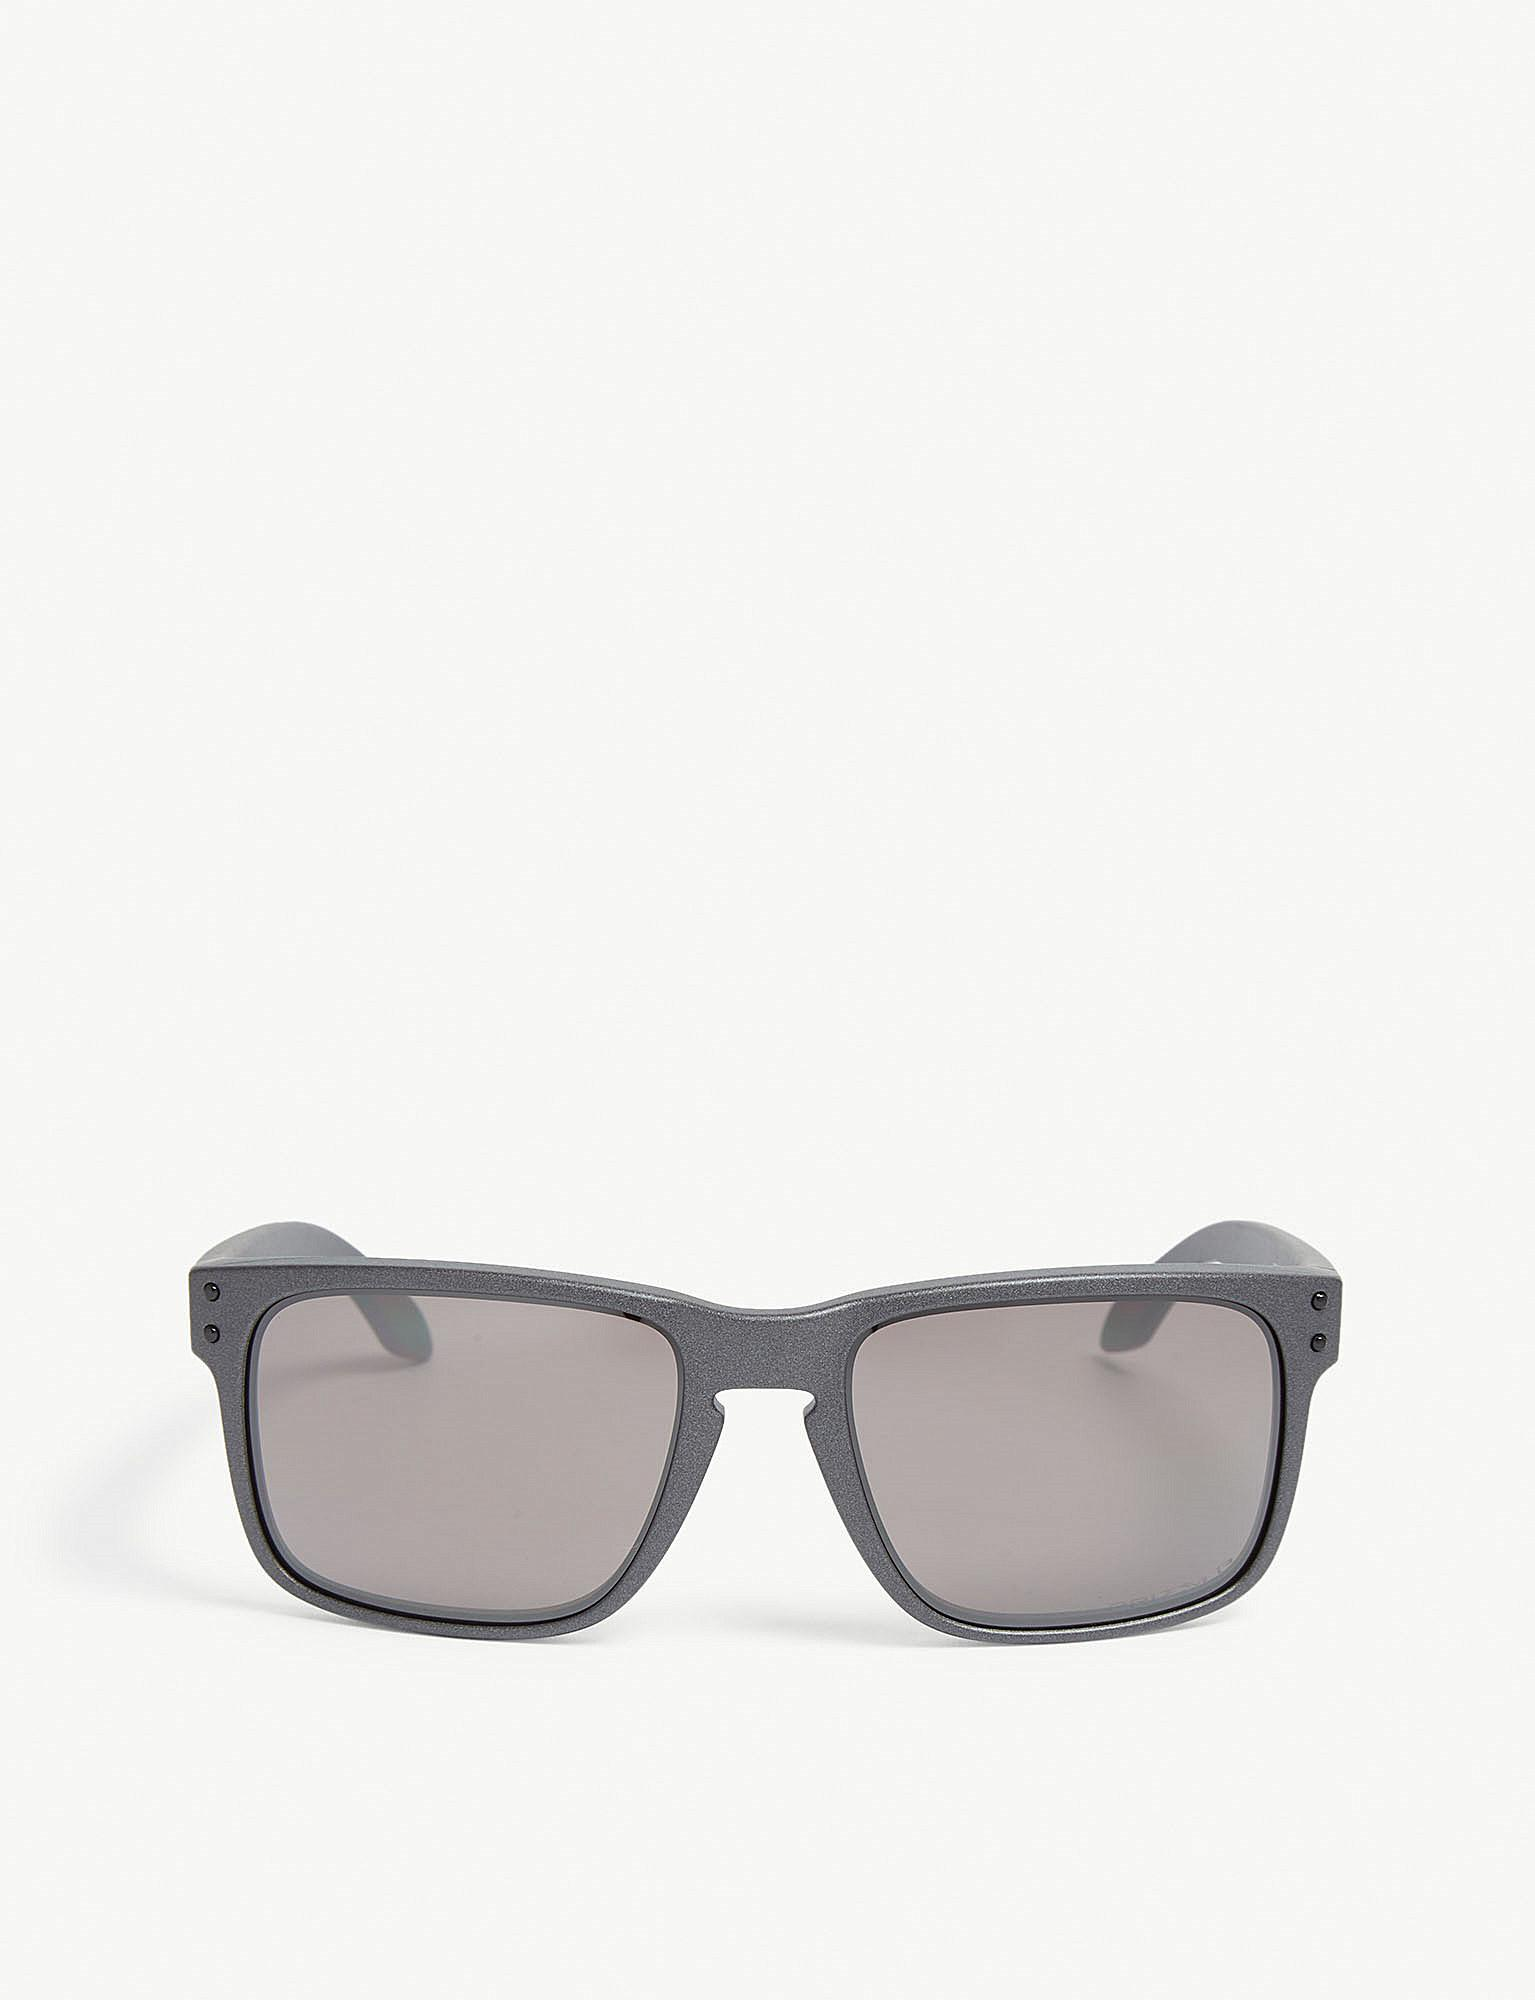 d6398d7b4f Lyst - Oakley Holbrook Oo9102 Square-frame Sunglasses in Gray for Men